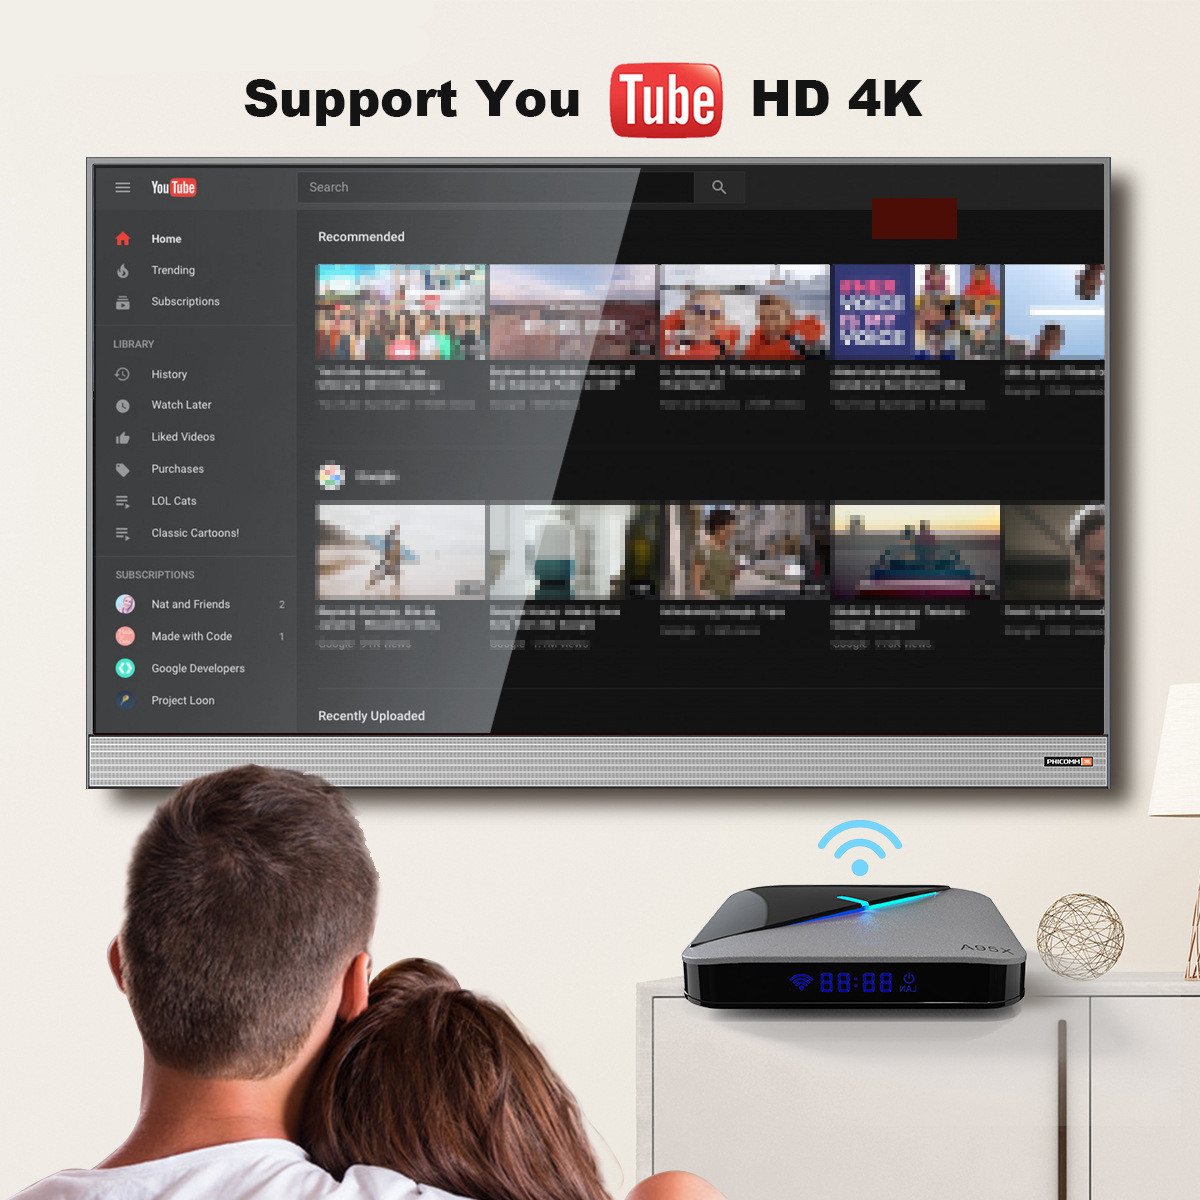 Support you tube HD